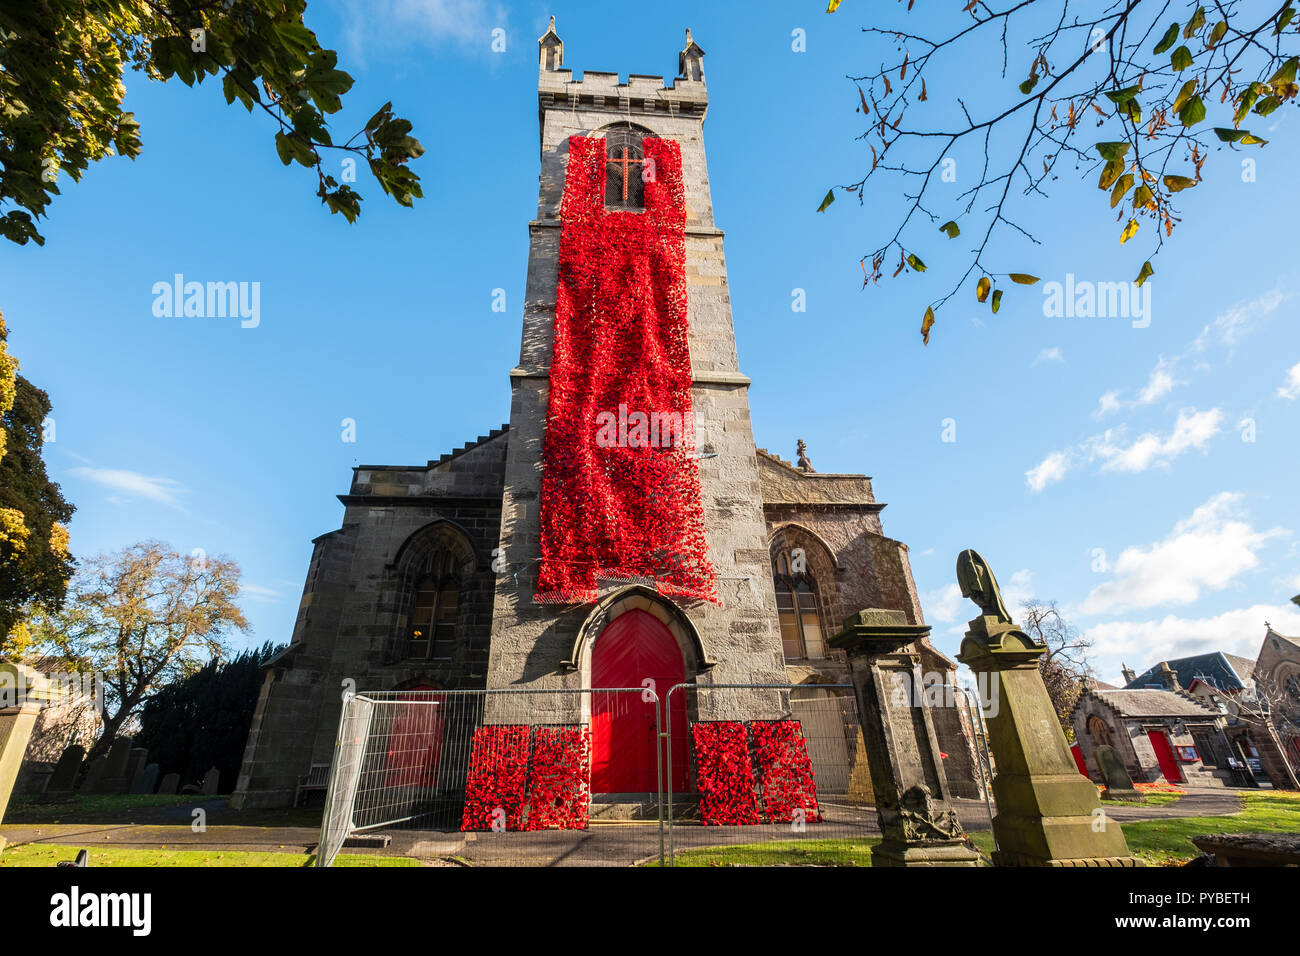 Edinburgh, Scotland, UK. 26 October, 2018. Liberton Kirk in Edinburgh is adorned with thousands of red poppies to mark the centenary of Armistice Day. The church bell tower is covered in a solid blanket of poppies made by the congregation. Credit: Iain Masterton/Alamy Live News - Stock Image